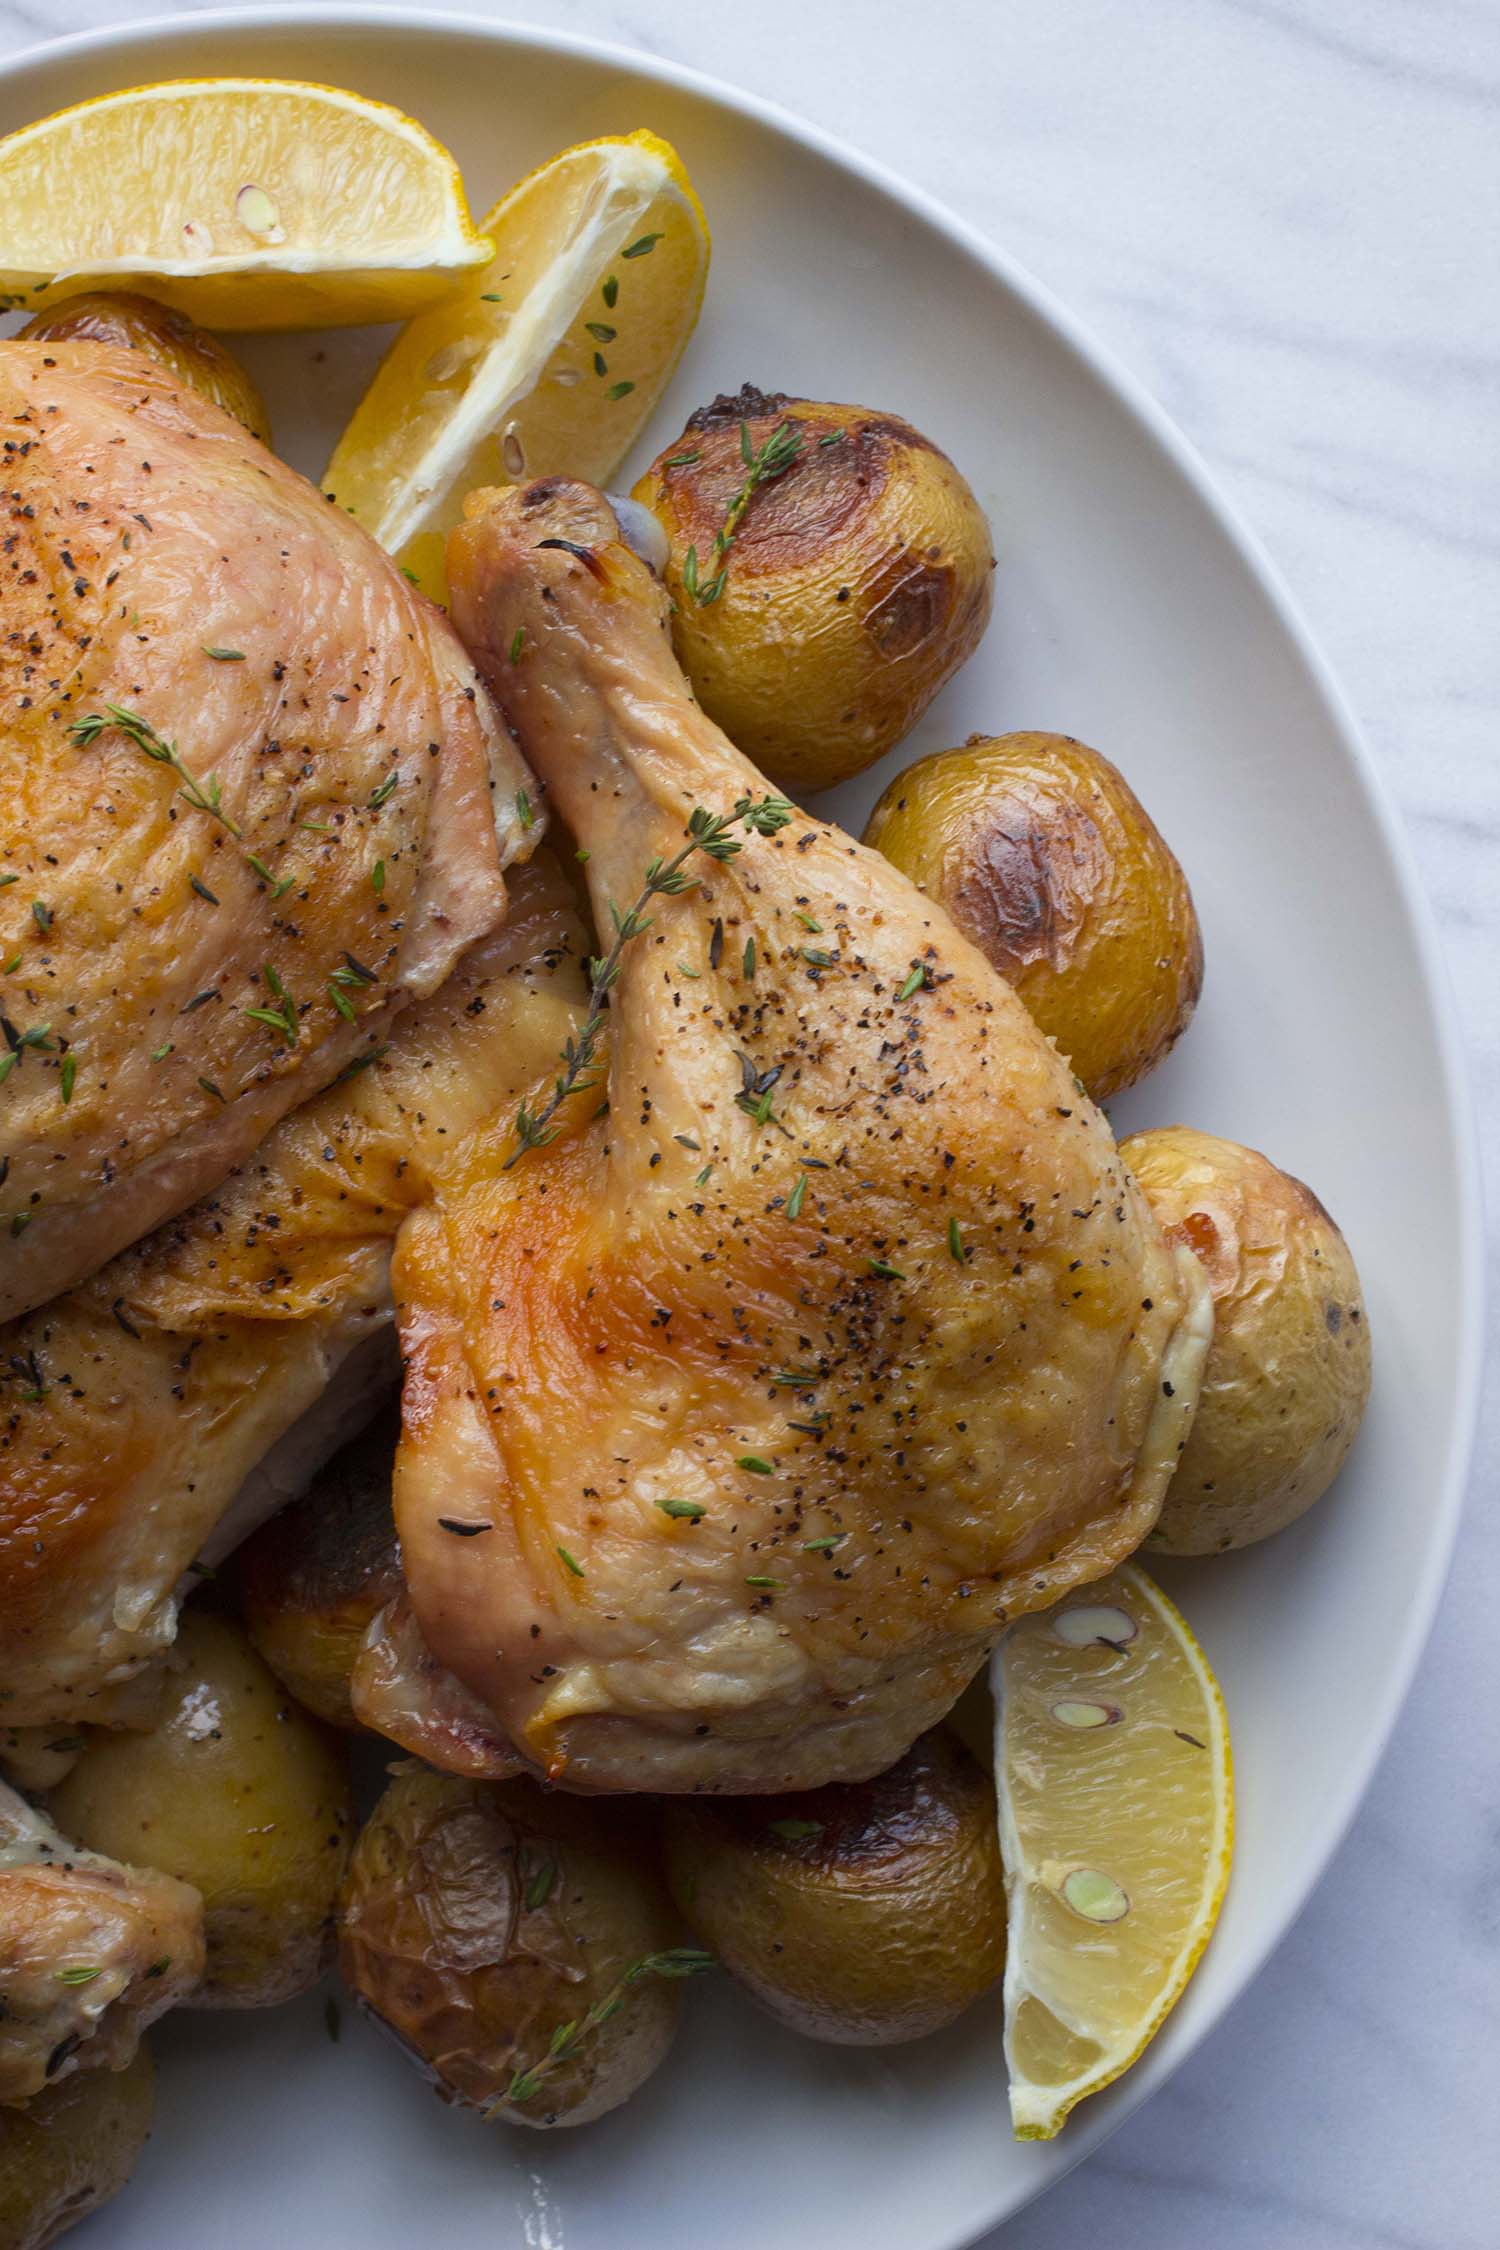 Parisian Roast Chicken with Tiny Potatoes  | Image:  Laura Messersmith